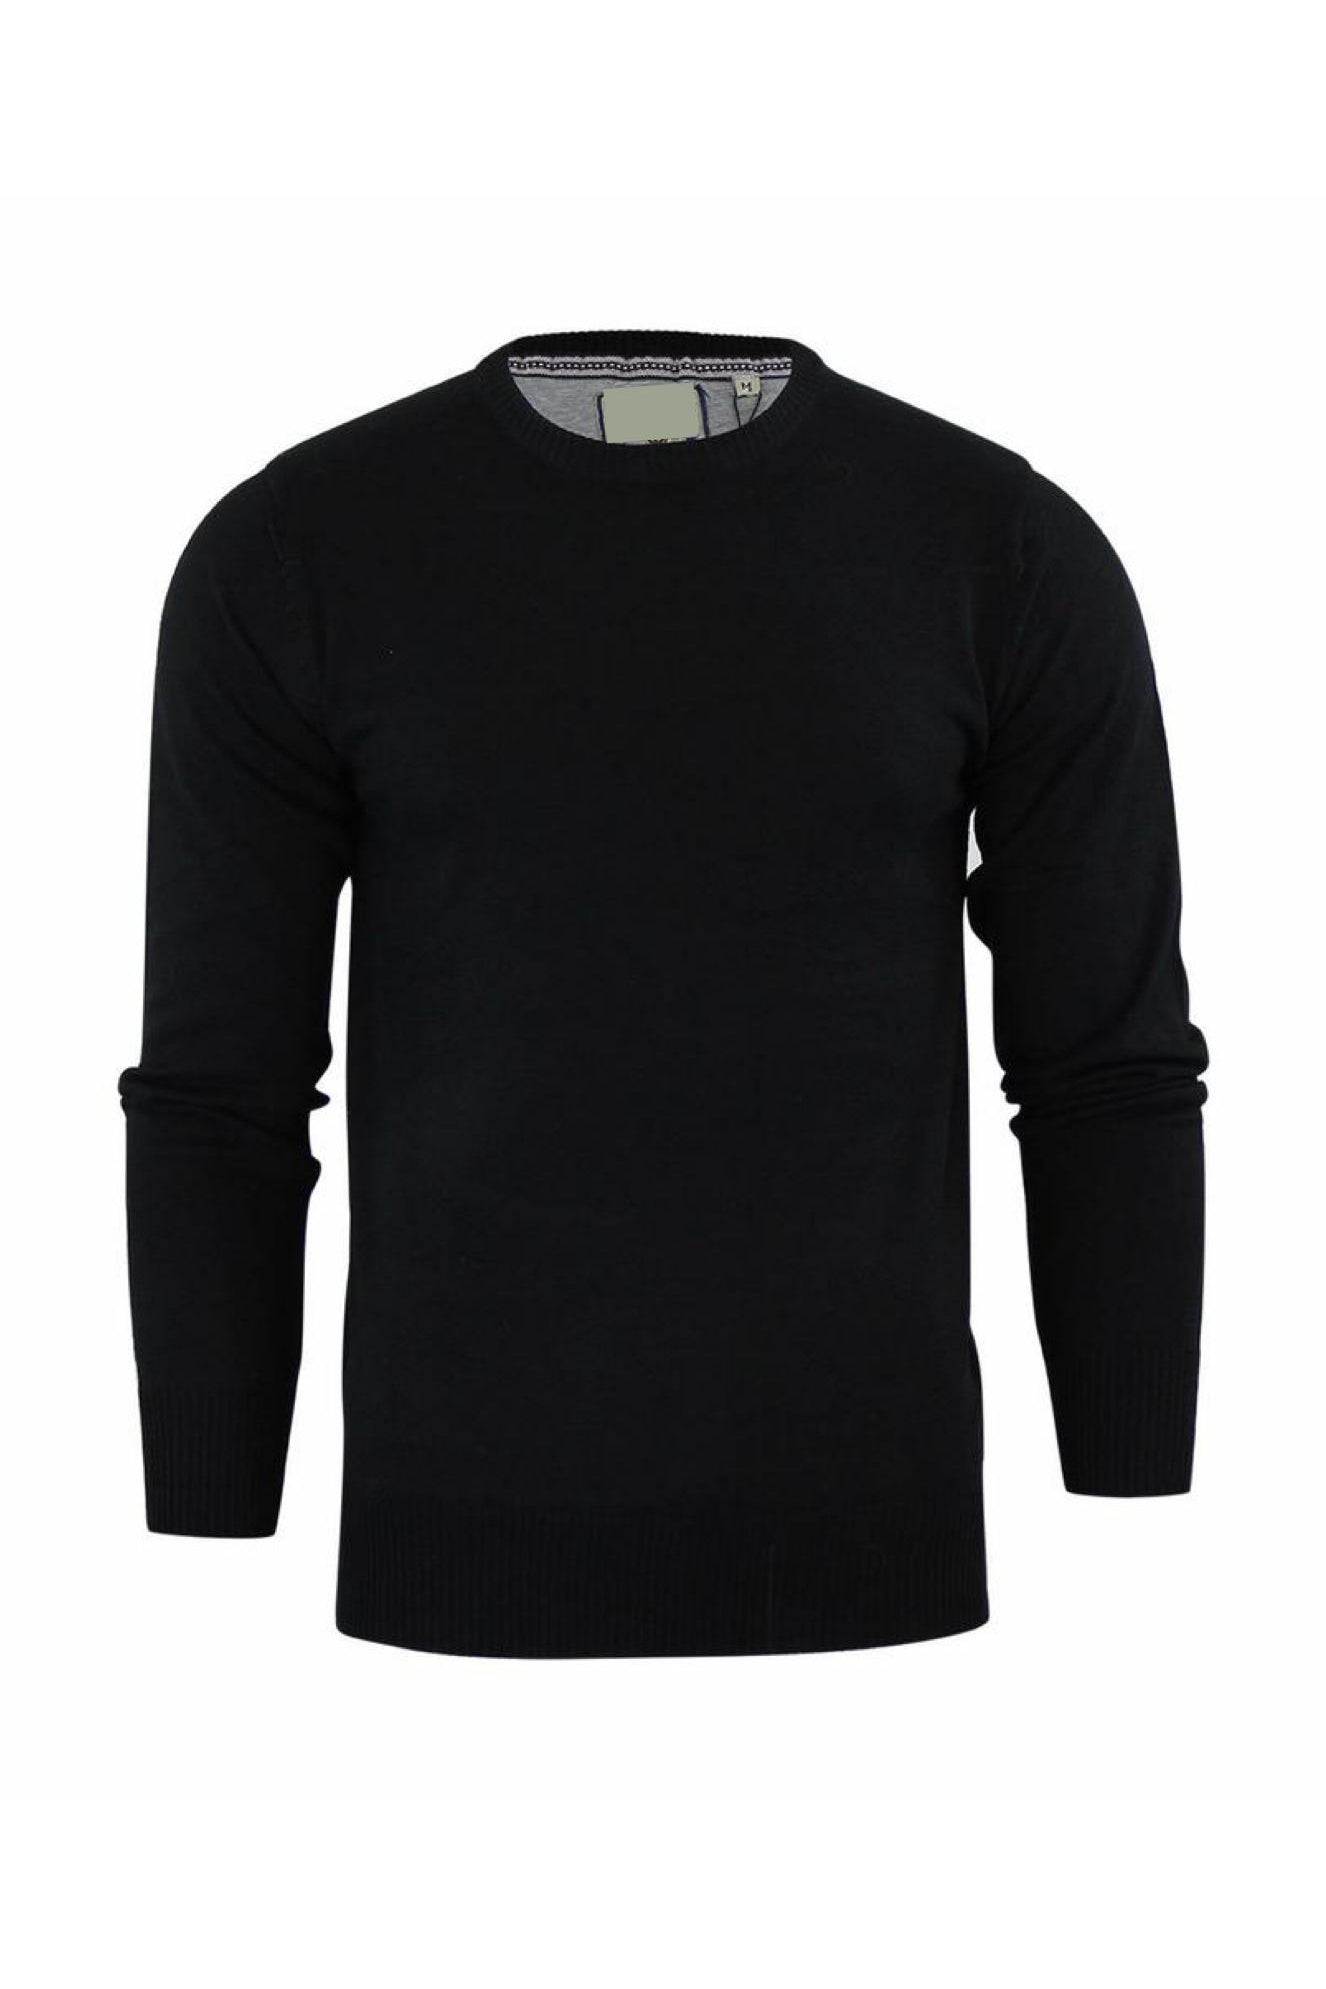 Crew Lightweight Knit Knit Black